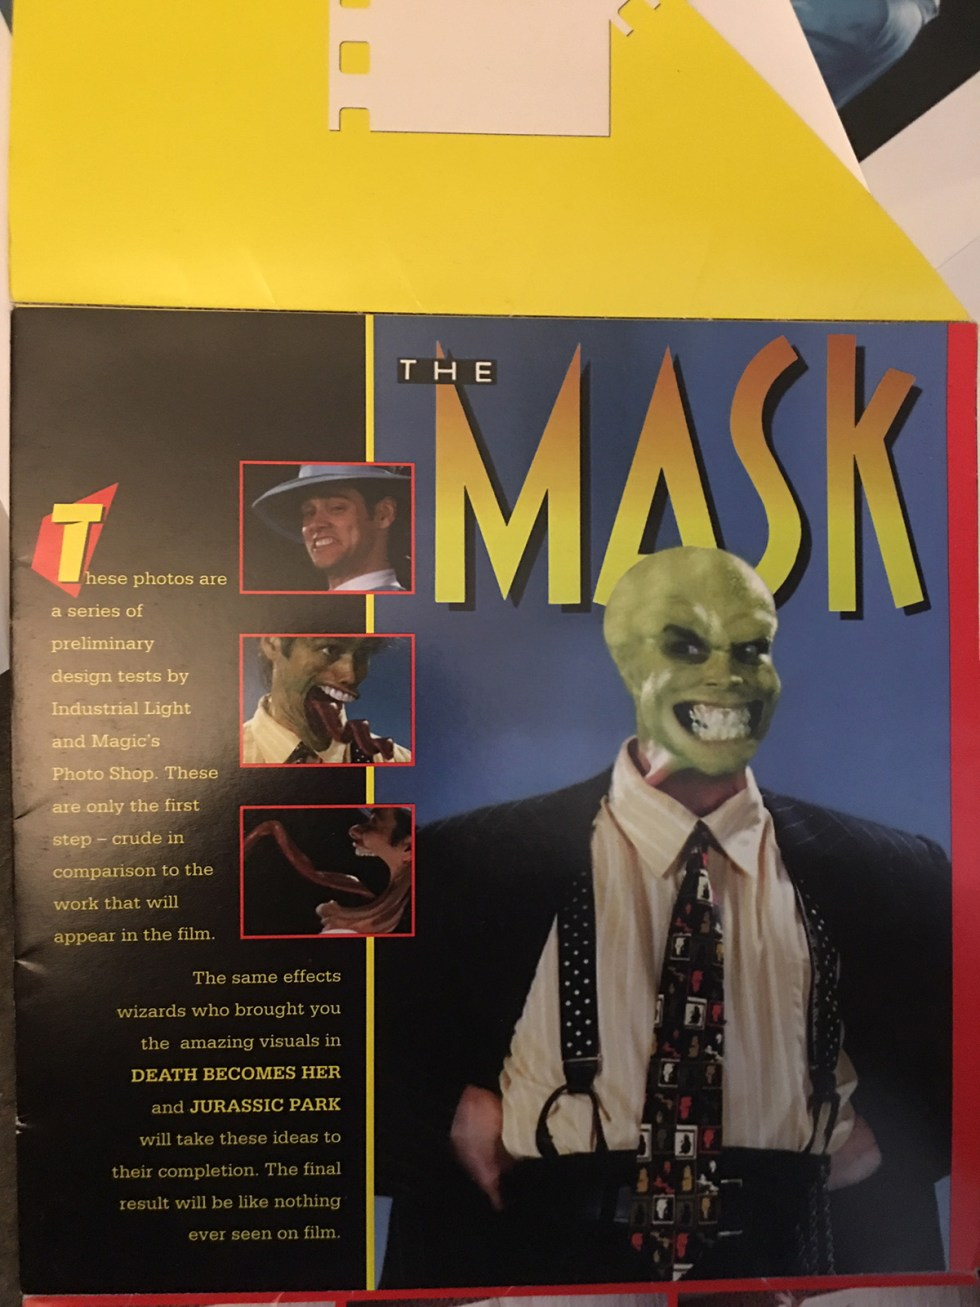 The Mask, with artwork by ILM